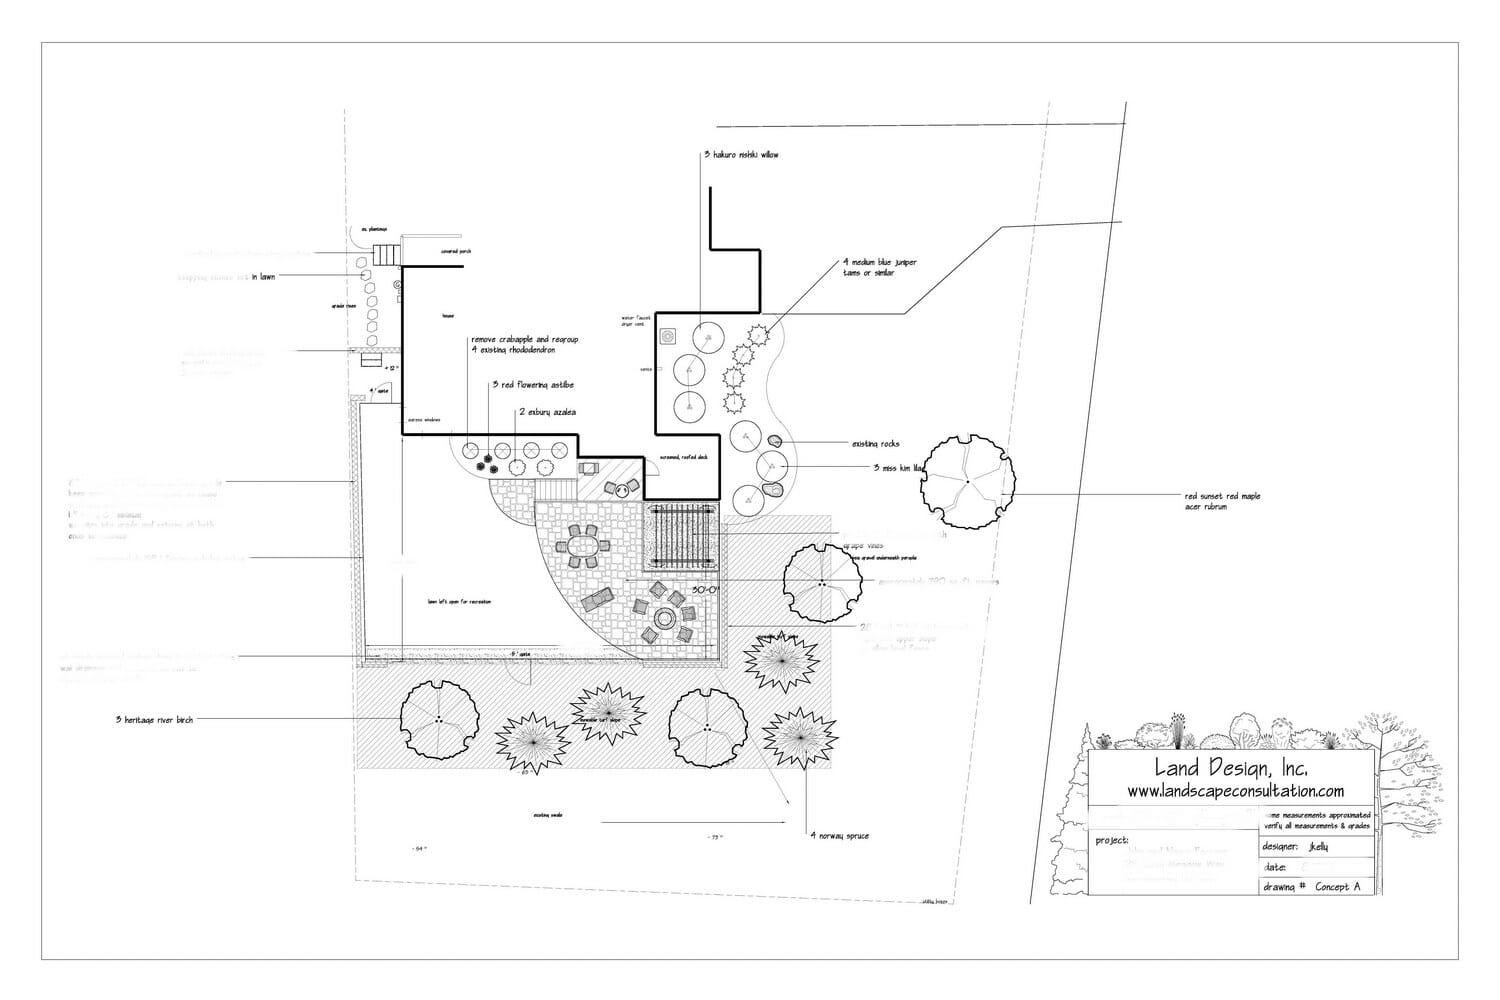 Complete Landscape Design Plans In The Albany Ny Area